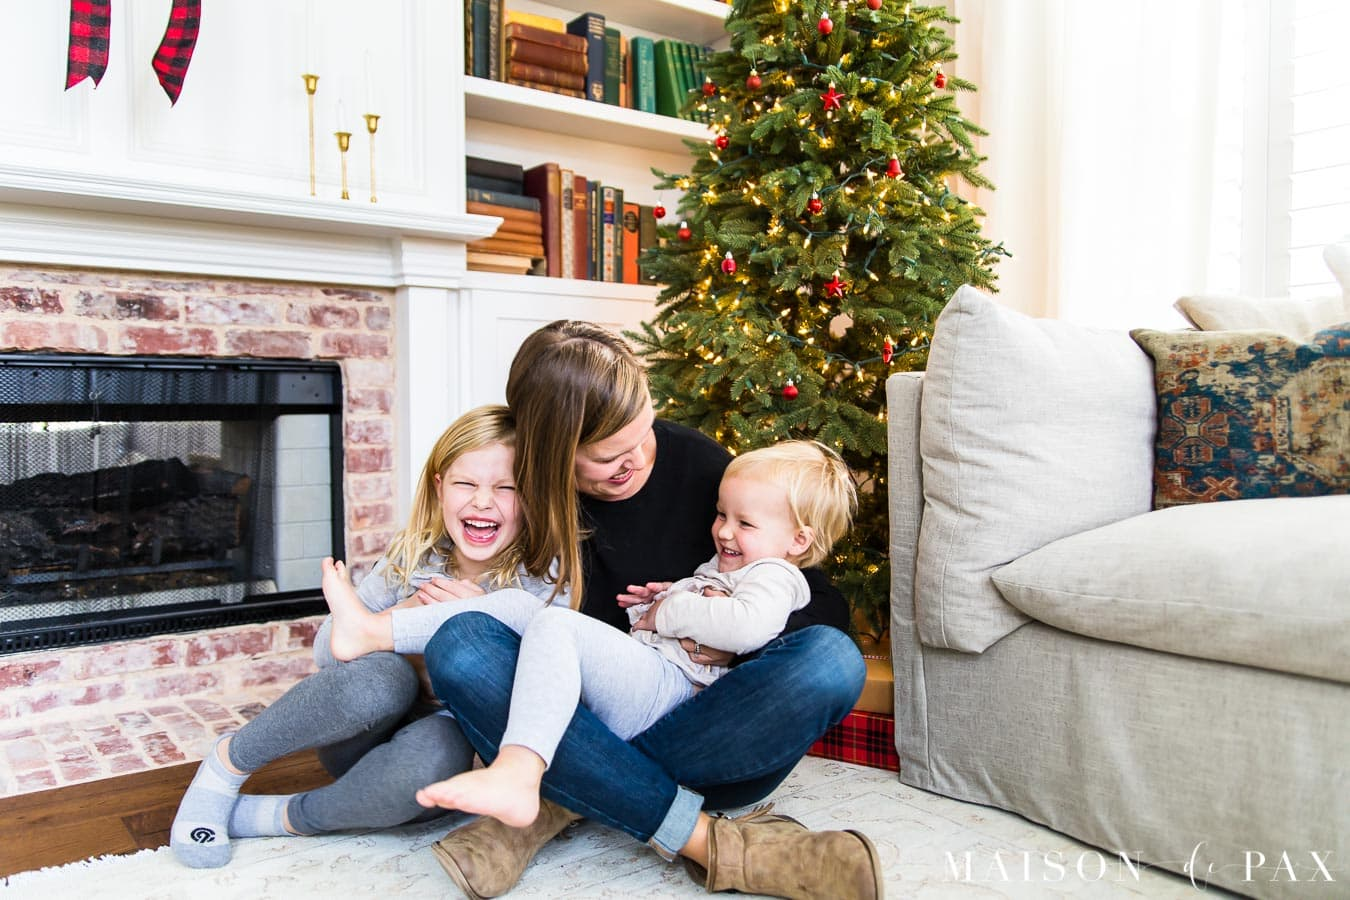 mother and daughters laughing in front of Christmas tree | Maison de Pax